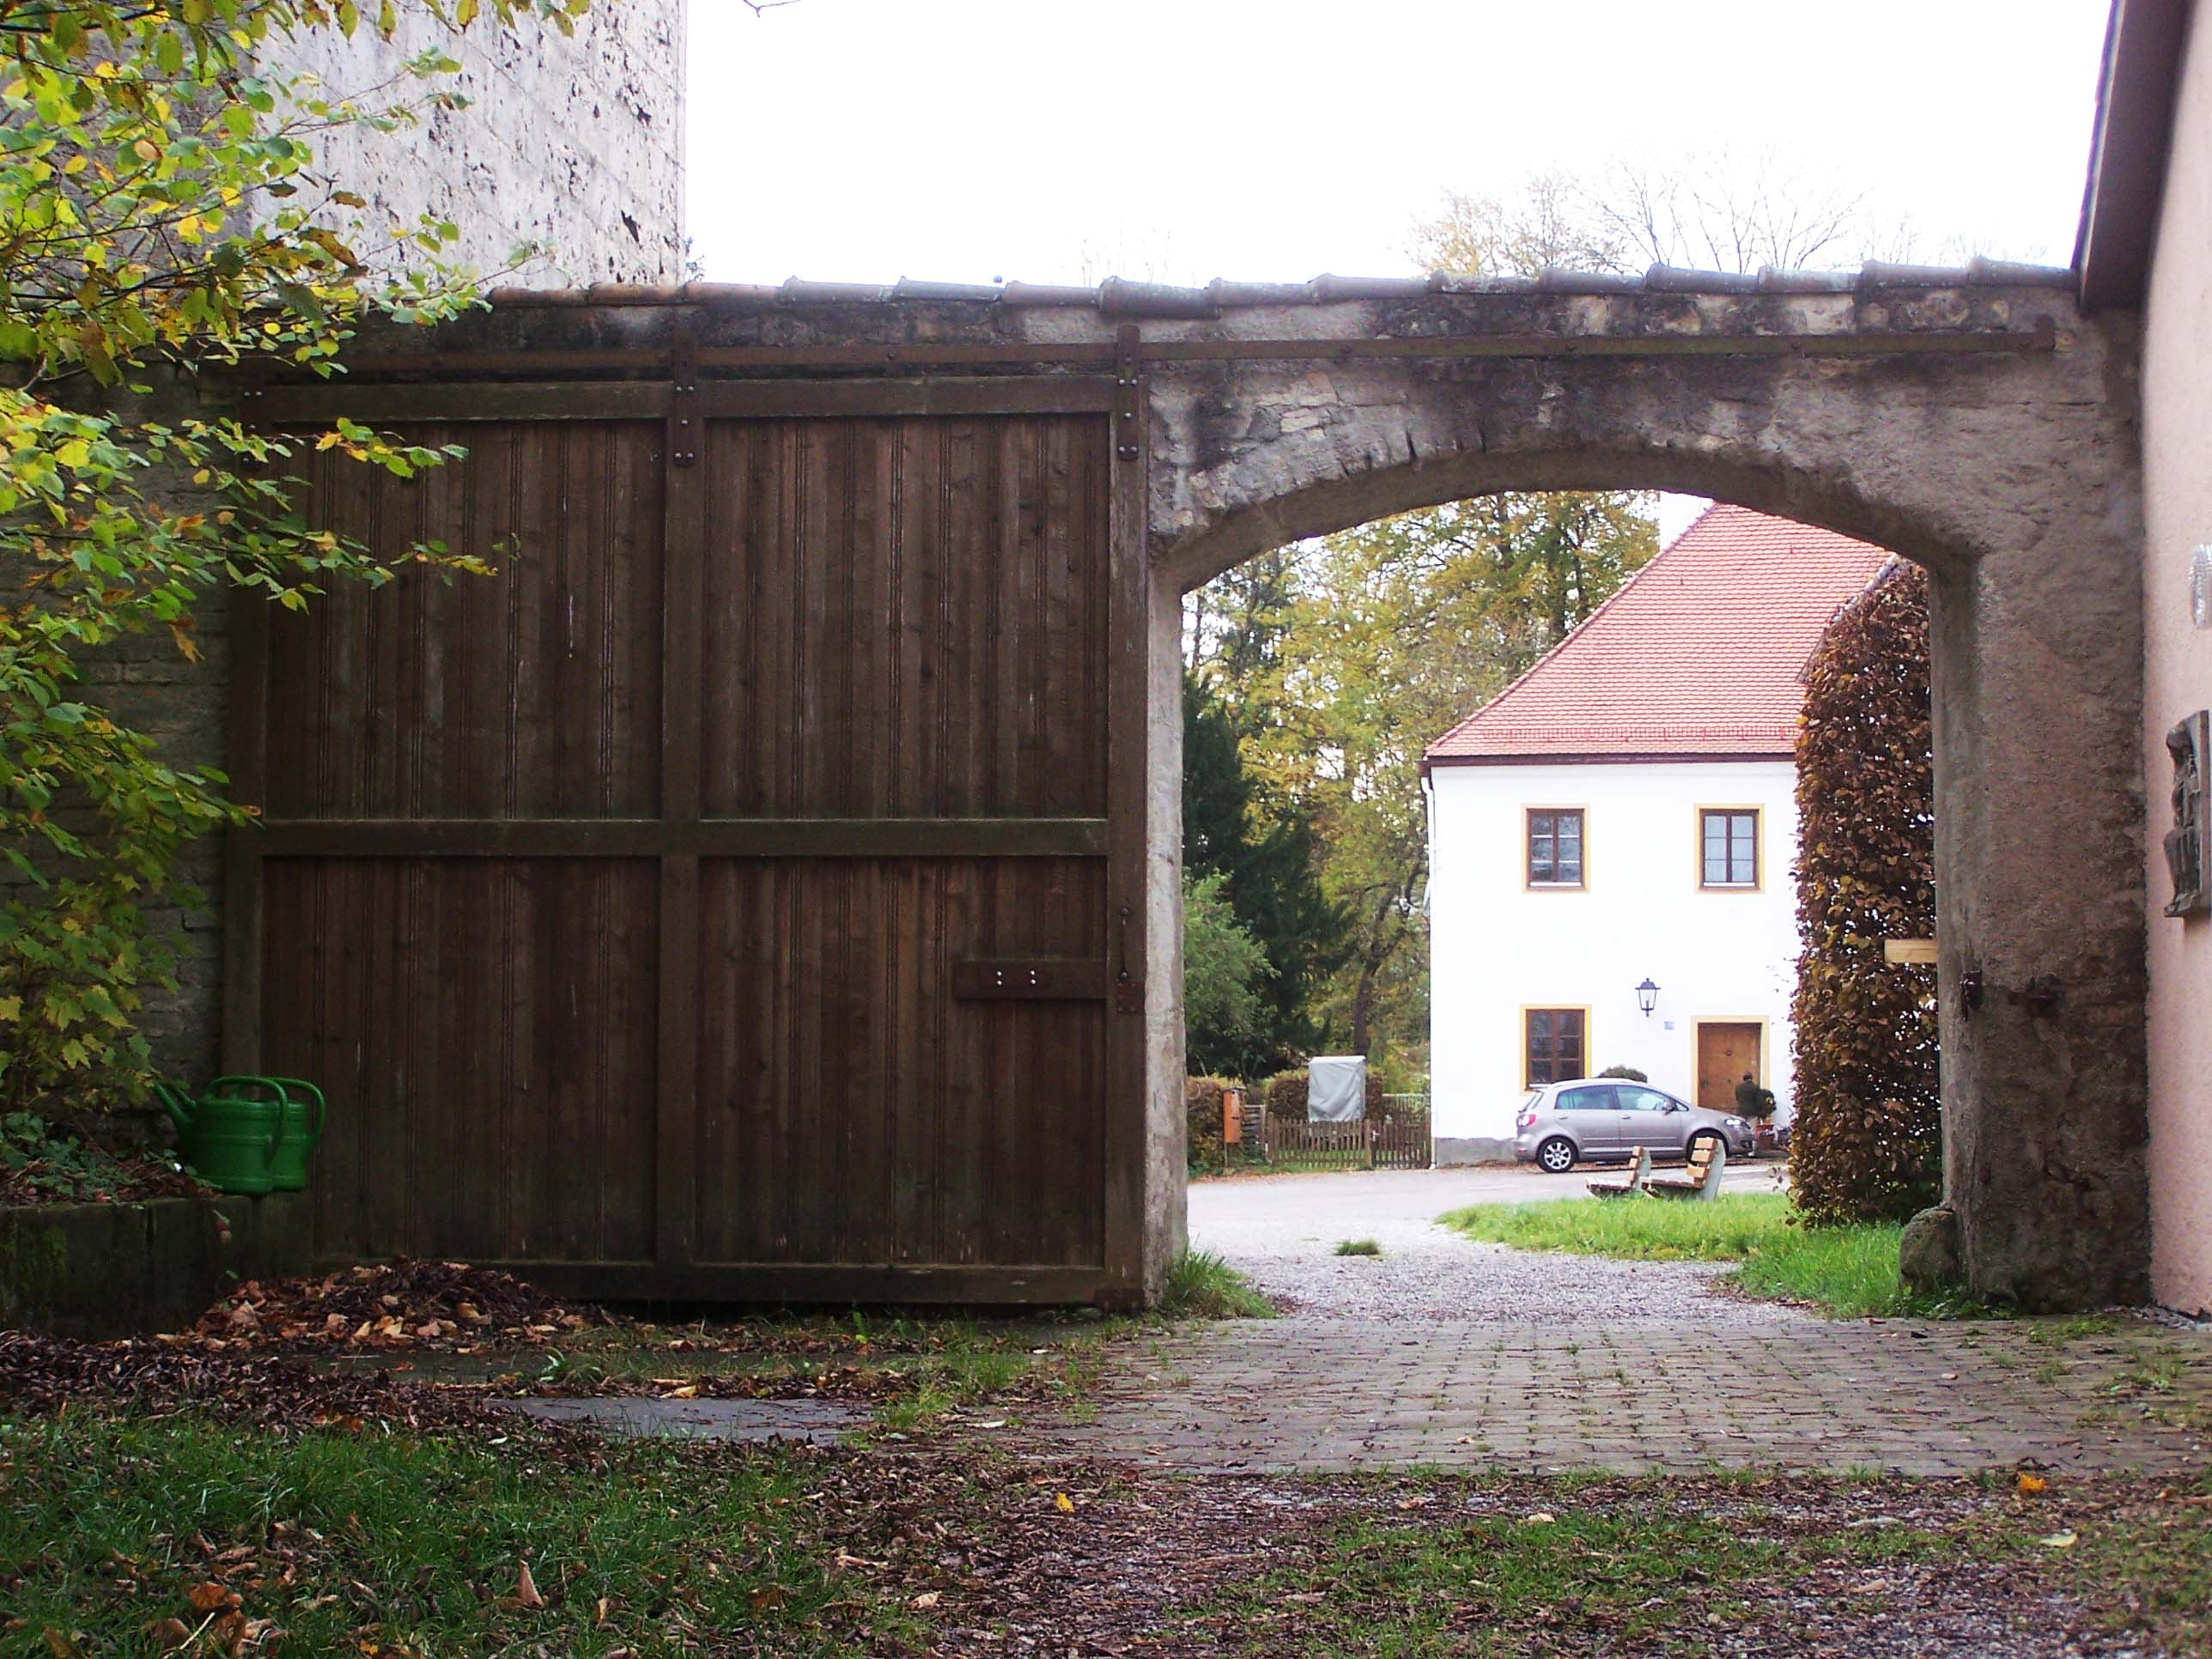 Gates of Wessobrunn